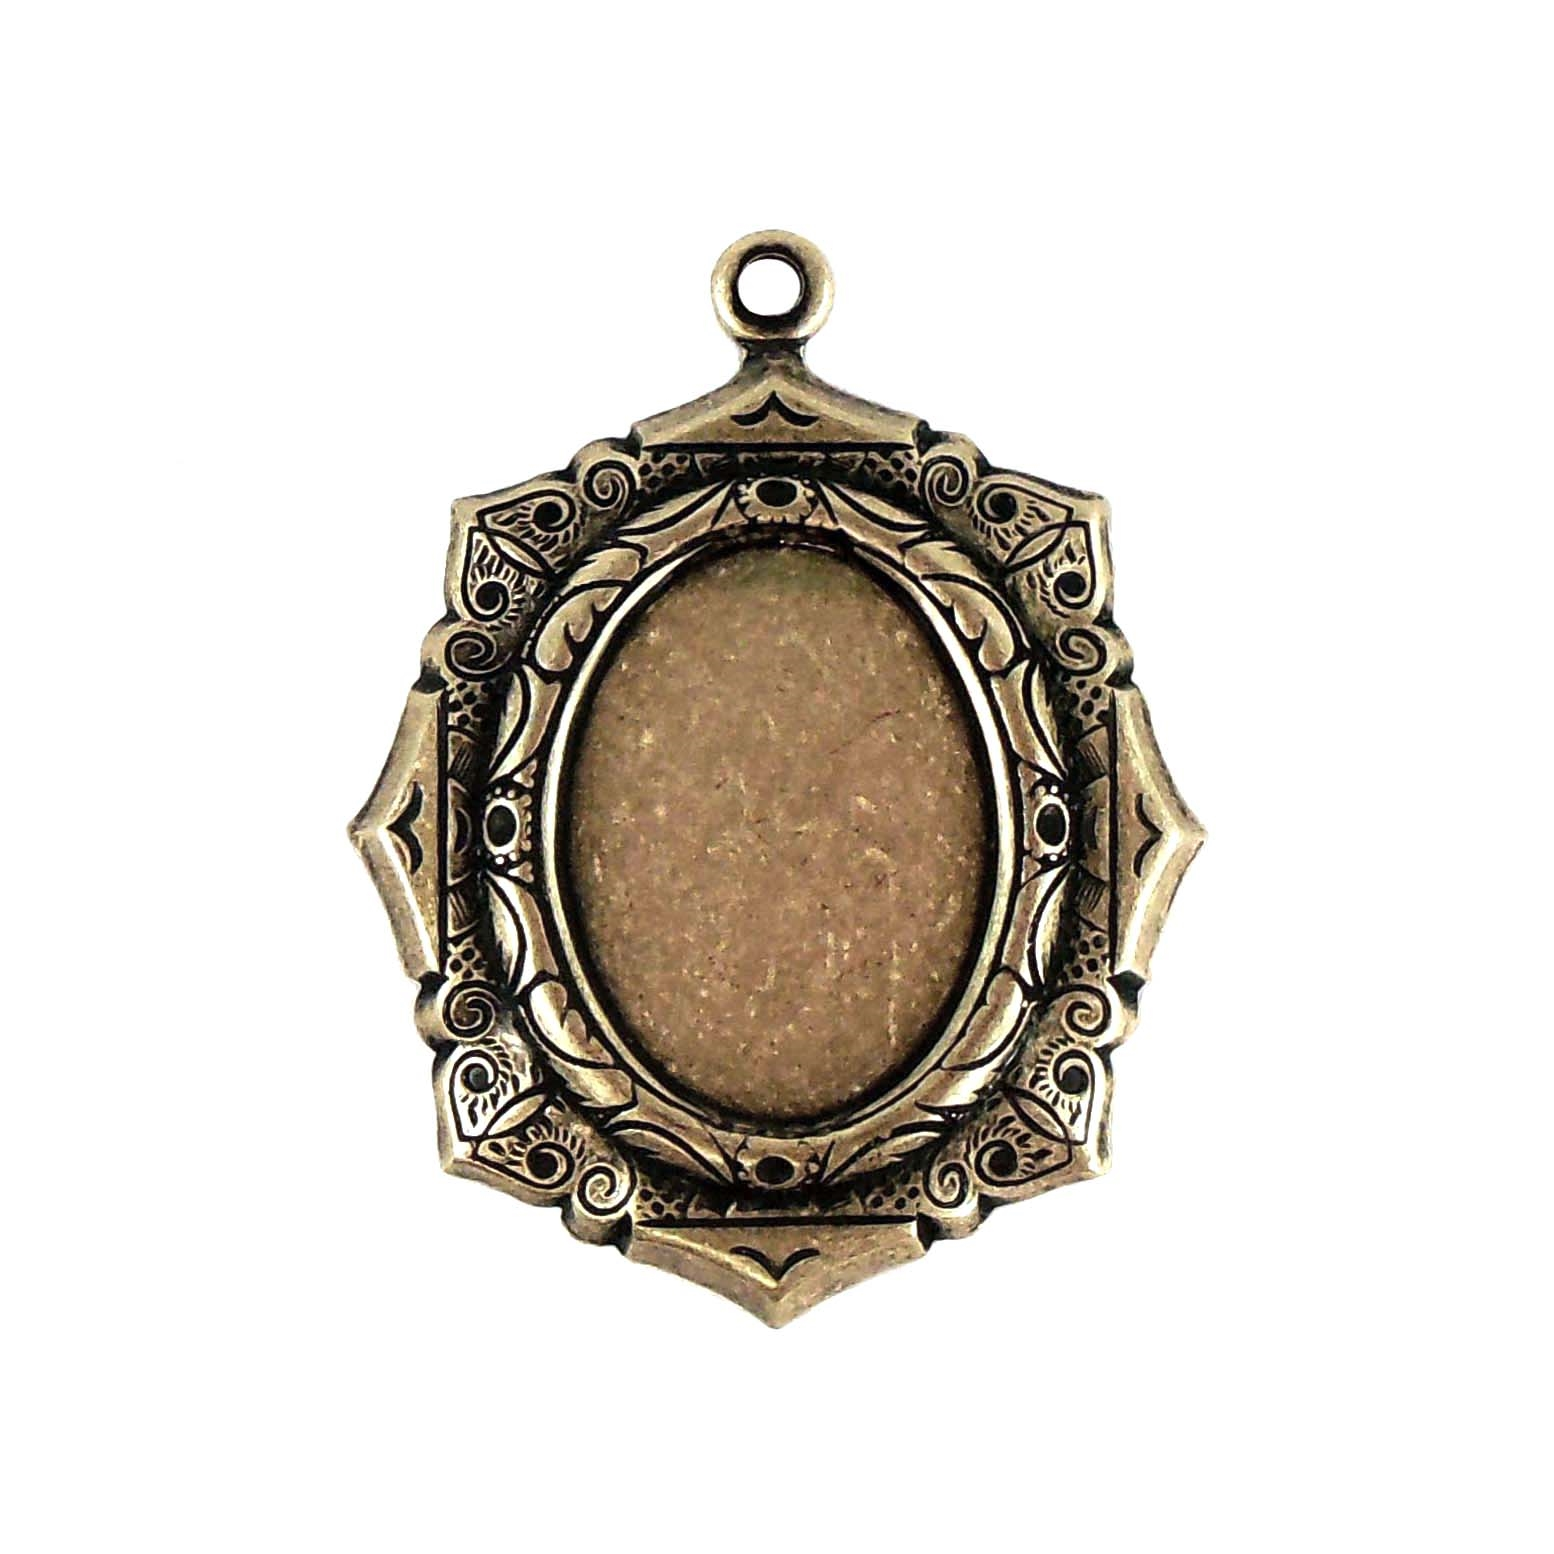 brass mount, brass pendant, cameo mount, B'sue Boutiques, nickel-free, jewelry supplies, vintage supplies, jewelry making, brass ox, antique brass, stone mount, jewelry findings, 18x13mm, pendant mount, pendant, mount, vintage style pendant mount, 0190